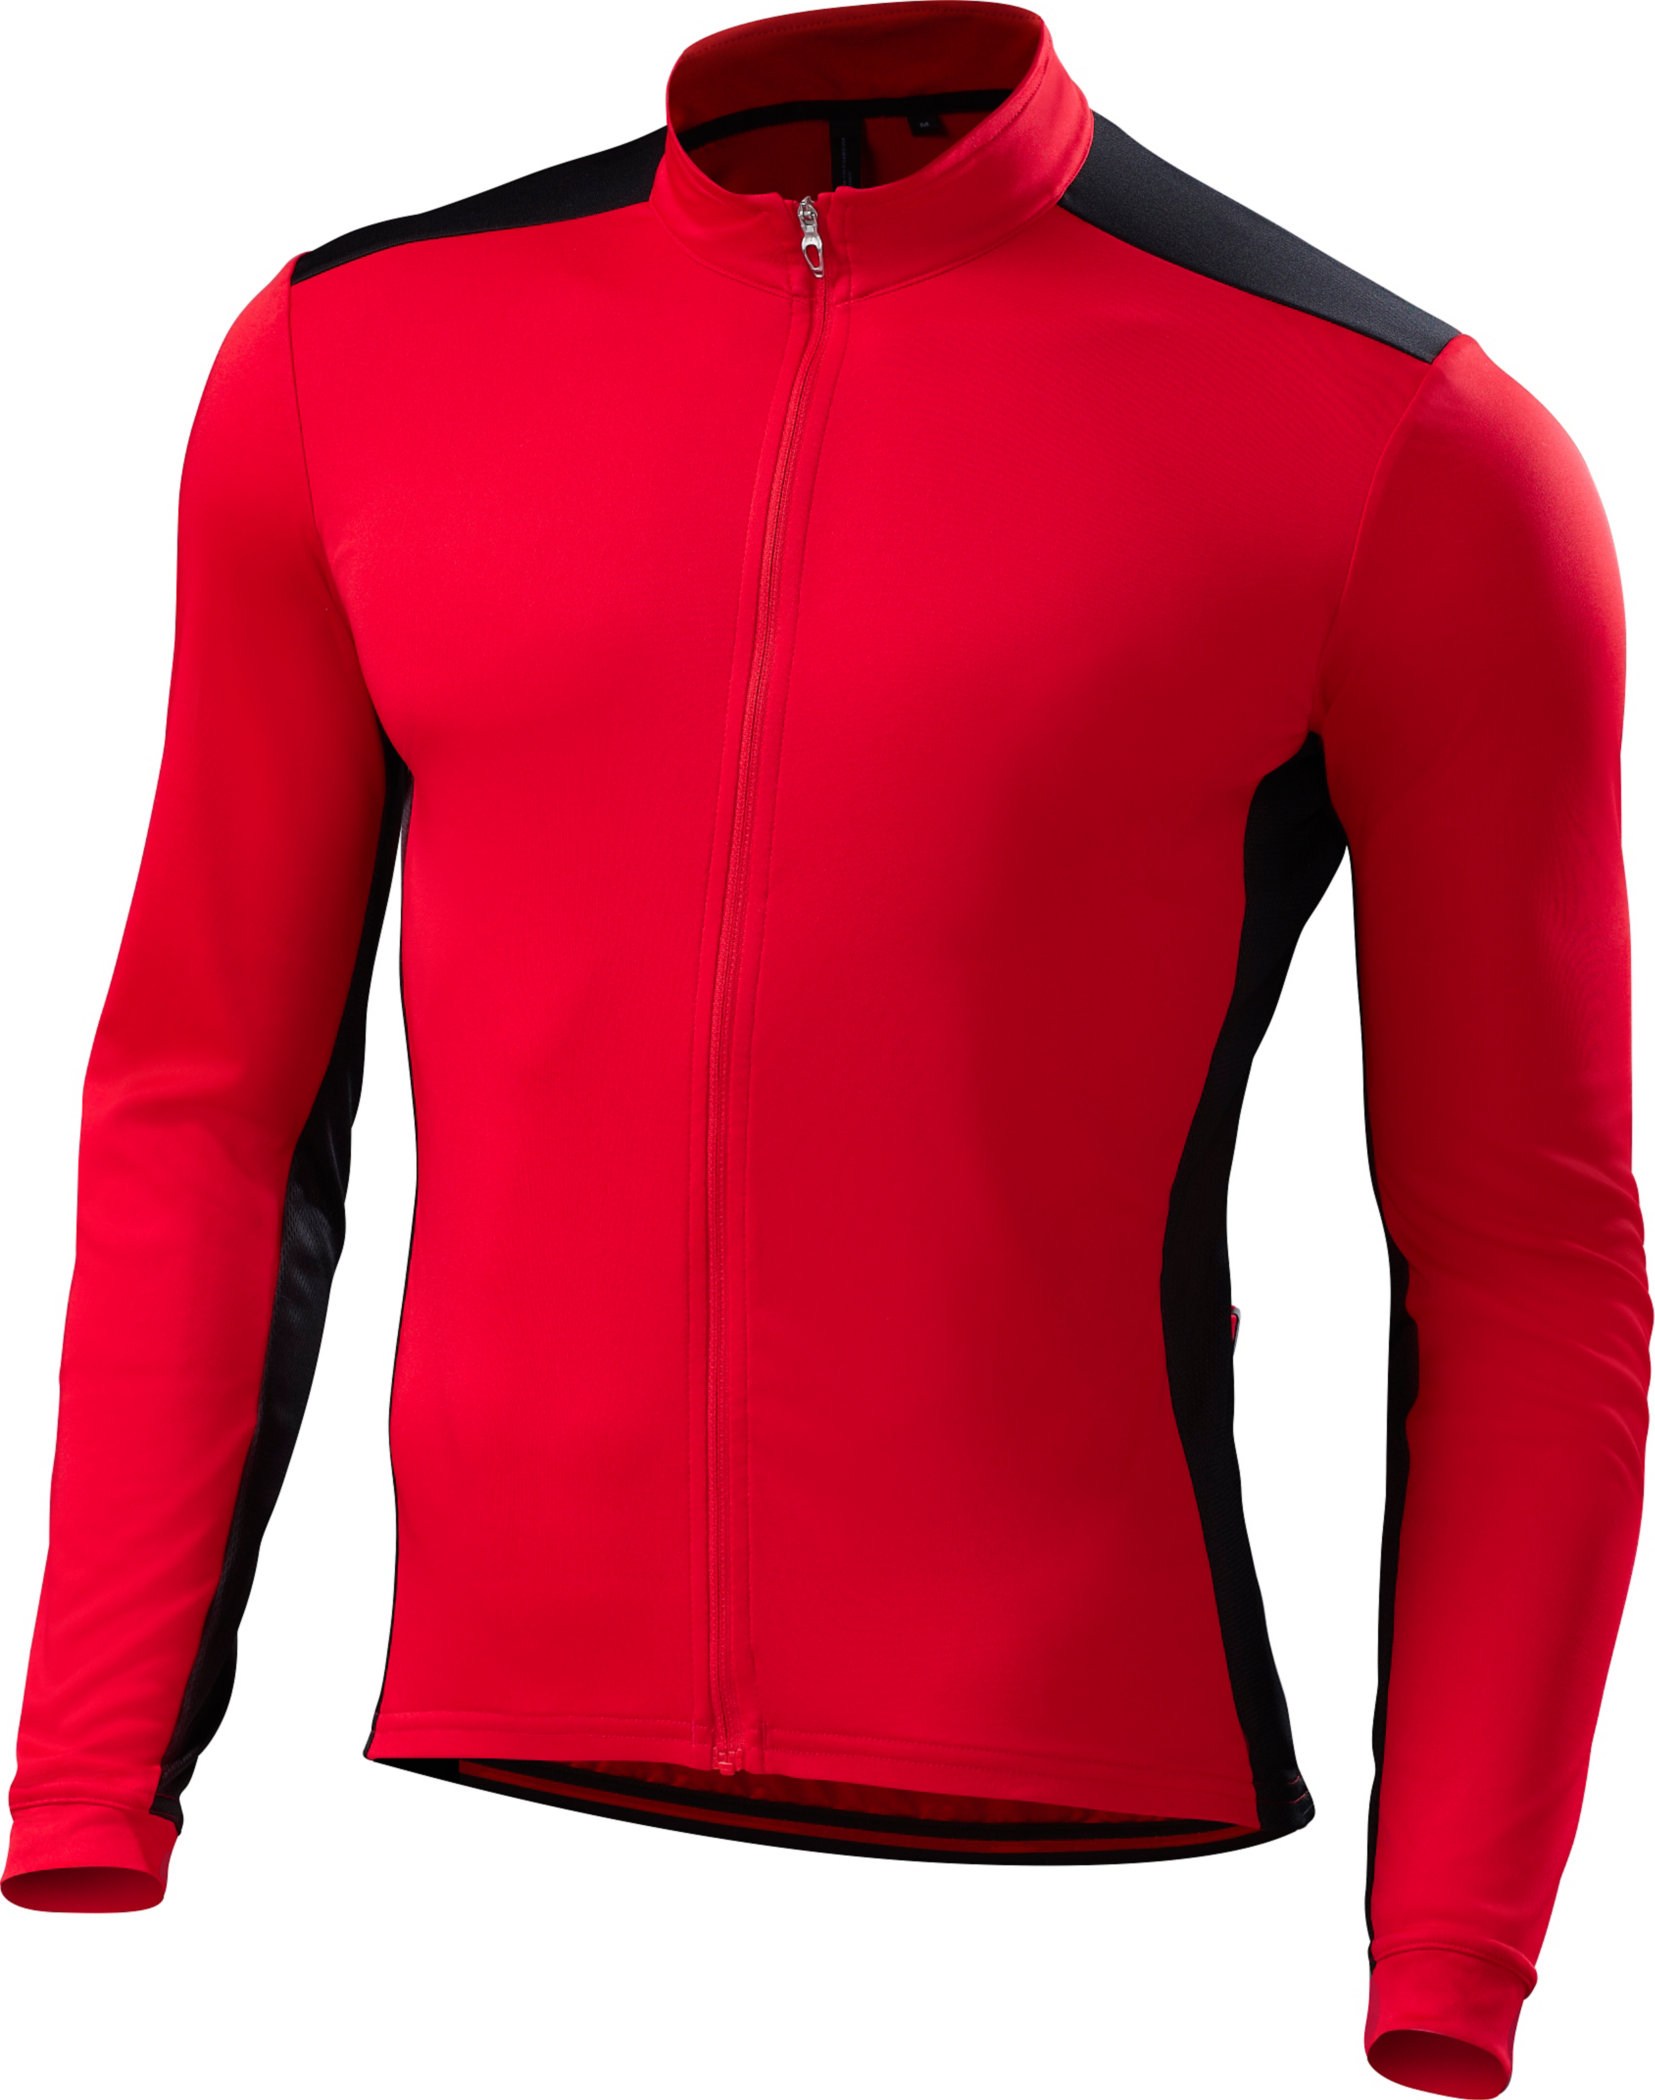 Specialized RBX Sport Long Sleeve Jersey Red/Black Medium - Alpha Bikes